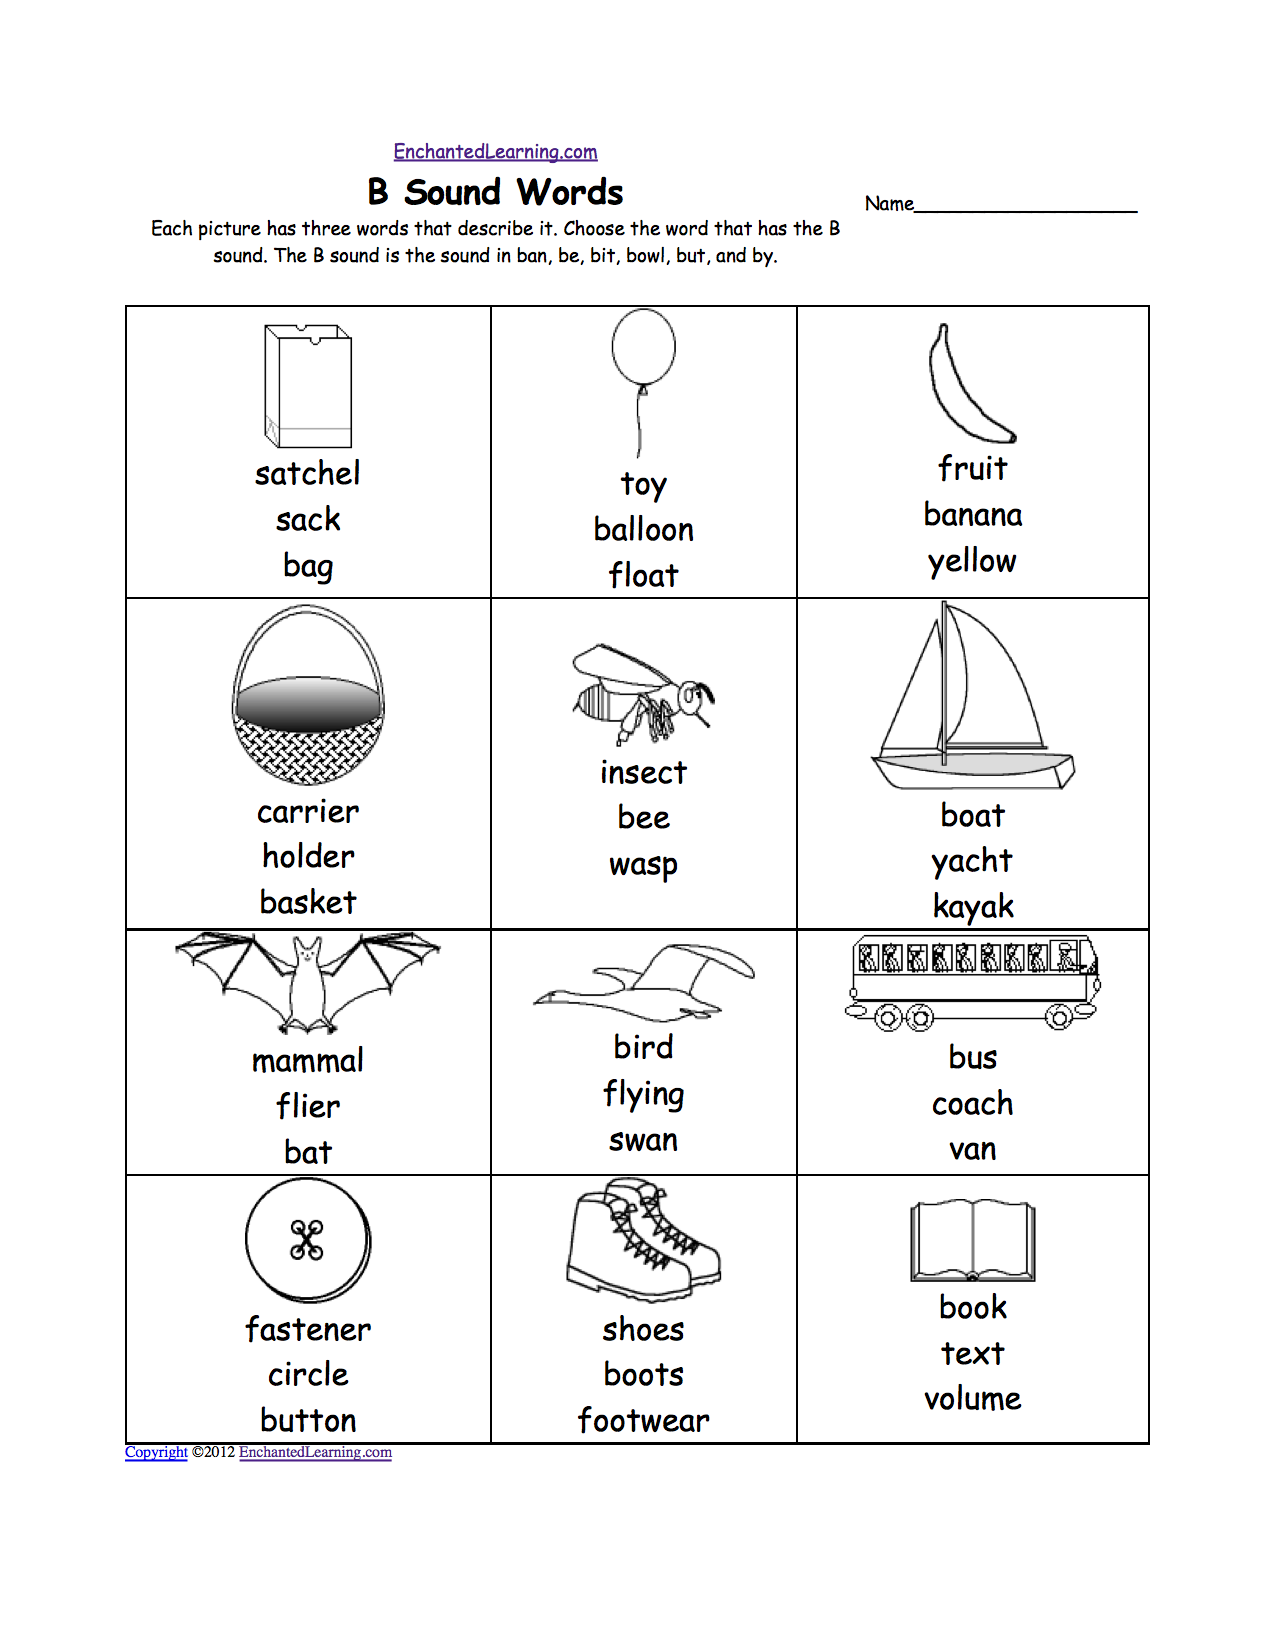 Proatmealus  Scenic Phonics Worksheets Multiple Choice Worksheets To Print  With Great Quotbquot Sound Phonics Worksheet Multiple Choice Each Picture Has Three Words That Describe It Choose The Word That Has A Quotbquot Sound The Quotbquot Sound Is The Sound  With Delightful Work Energy Worksheet Also Joint Variation Worksheet In Addition Math Worksheets Telling Time And Movie Worksheets Science As Well As Synonyms And Antonyms Worksheets Nd Grade Additionally Musical Worksheets From Enchantedlearningcom With Proatmealus  Great Phonics Worksheets Multiple Choice Worksheets To Print  With Delightful Quotbquot Sound Phonics Worksheet Multiple Choice Each Picture Has Three Words That Describe It Choose The Word That Has A Quotbquot Sound The Quotbquot Sound Is The Sound  And Scenic Work Energy Worksheet Also Joint Variation Worksheet In Addition Math Worksheets Telling Time From Enchantedlearningcom